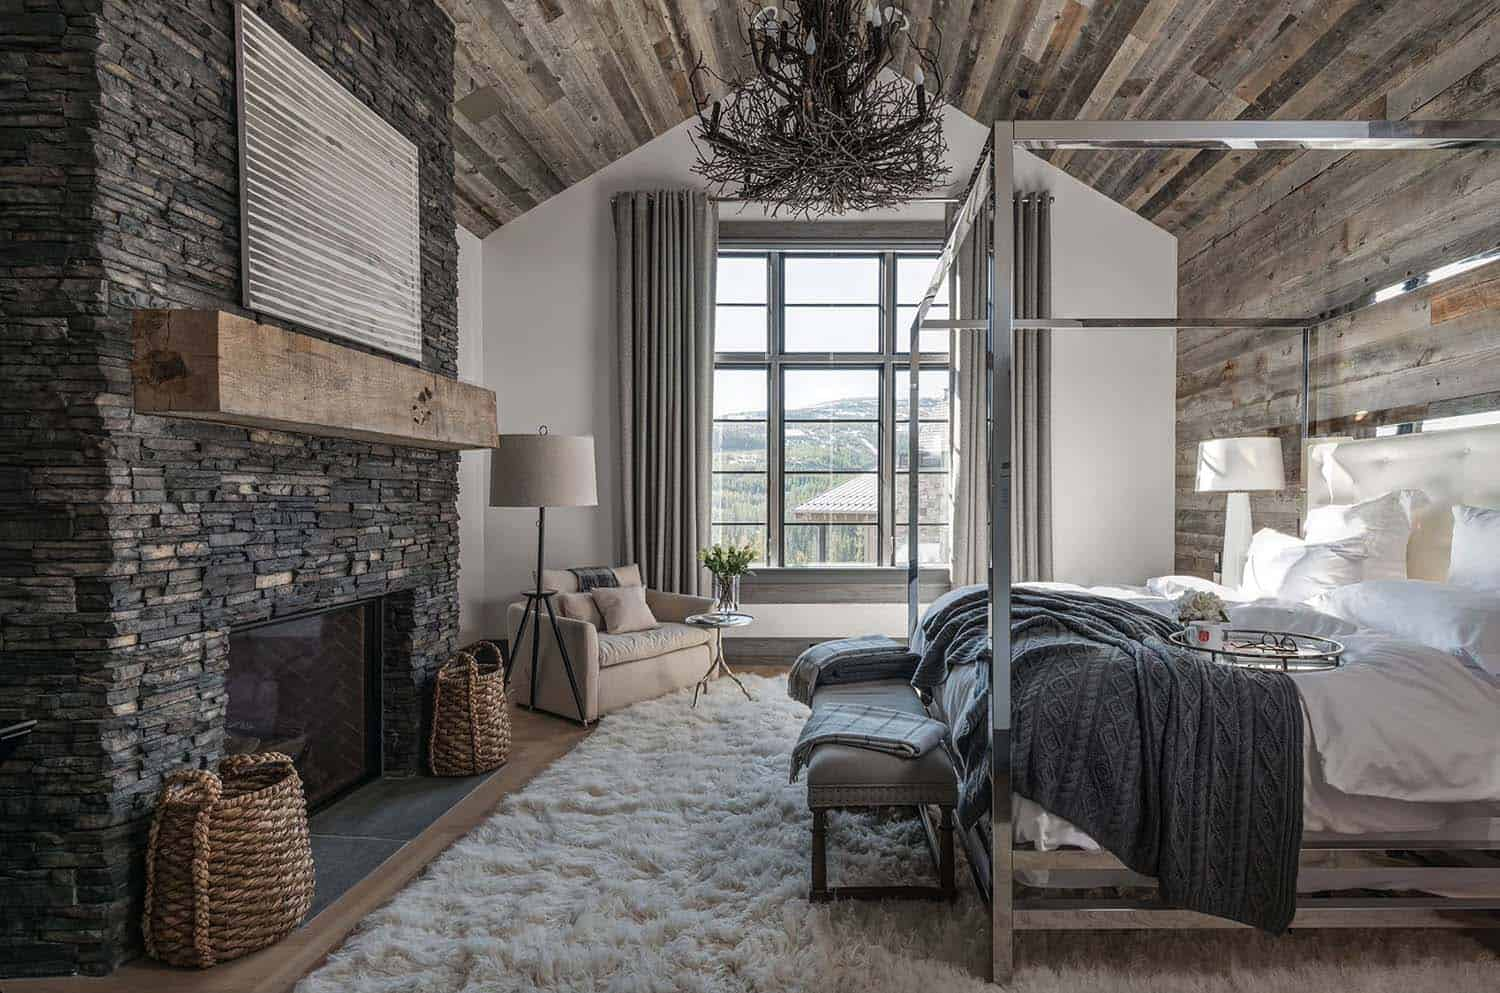 40 amazing rustic bedrooms styled to feel like a cozy getaway Rustic style attic design a corner full of passion